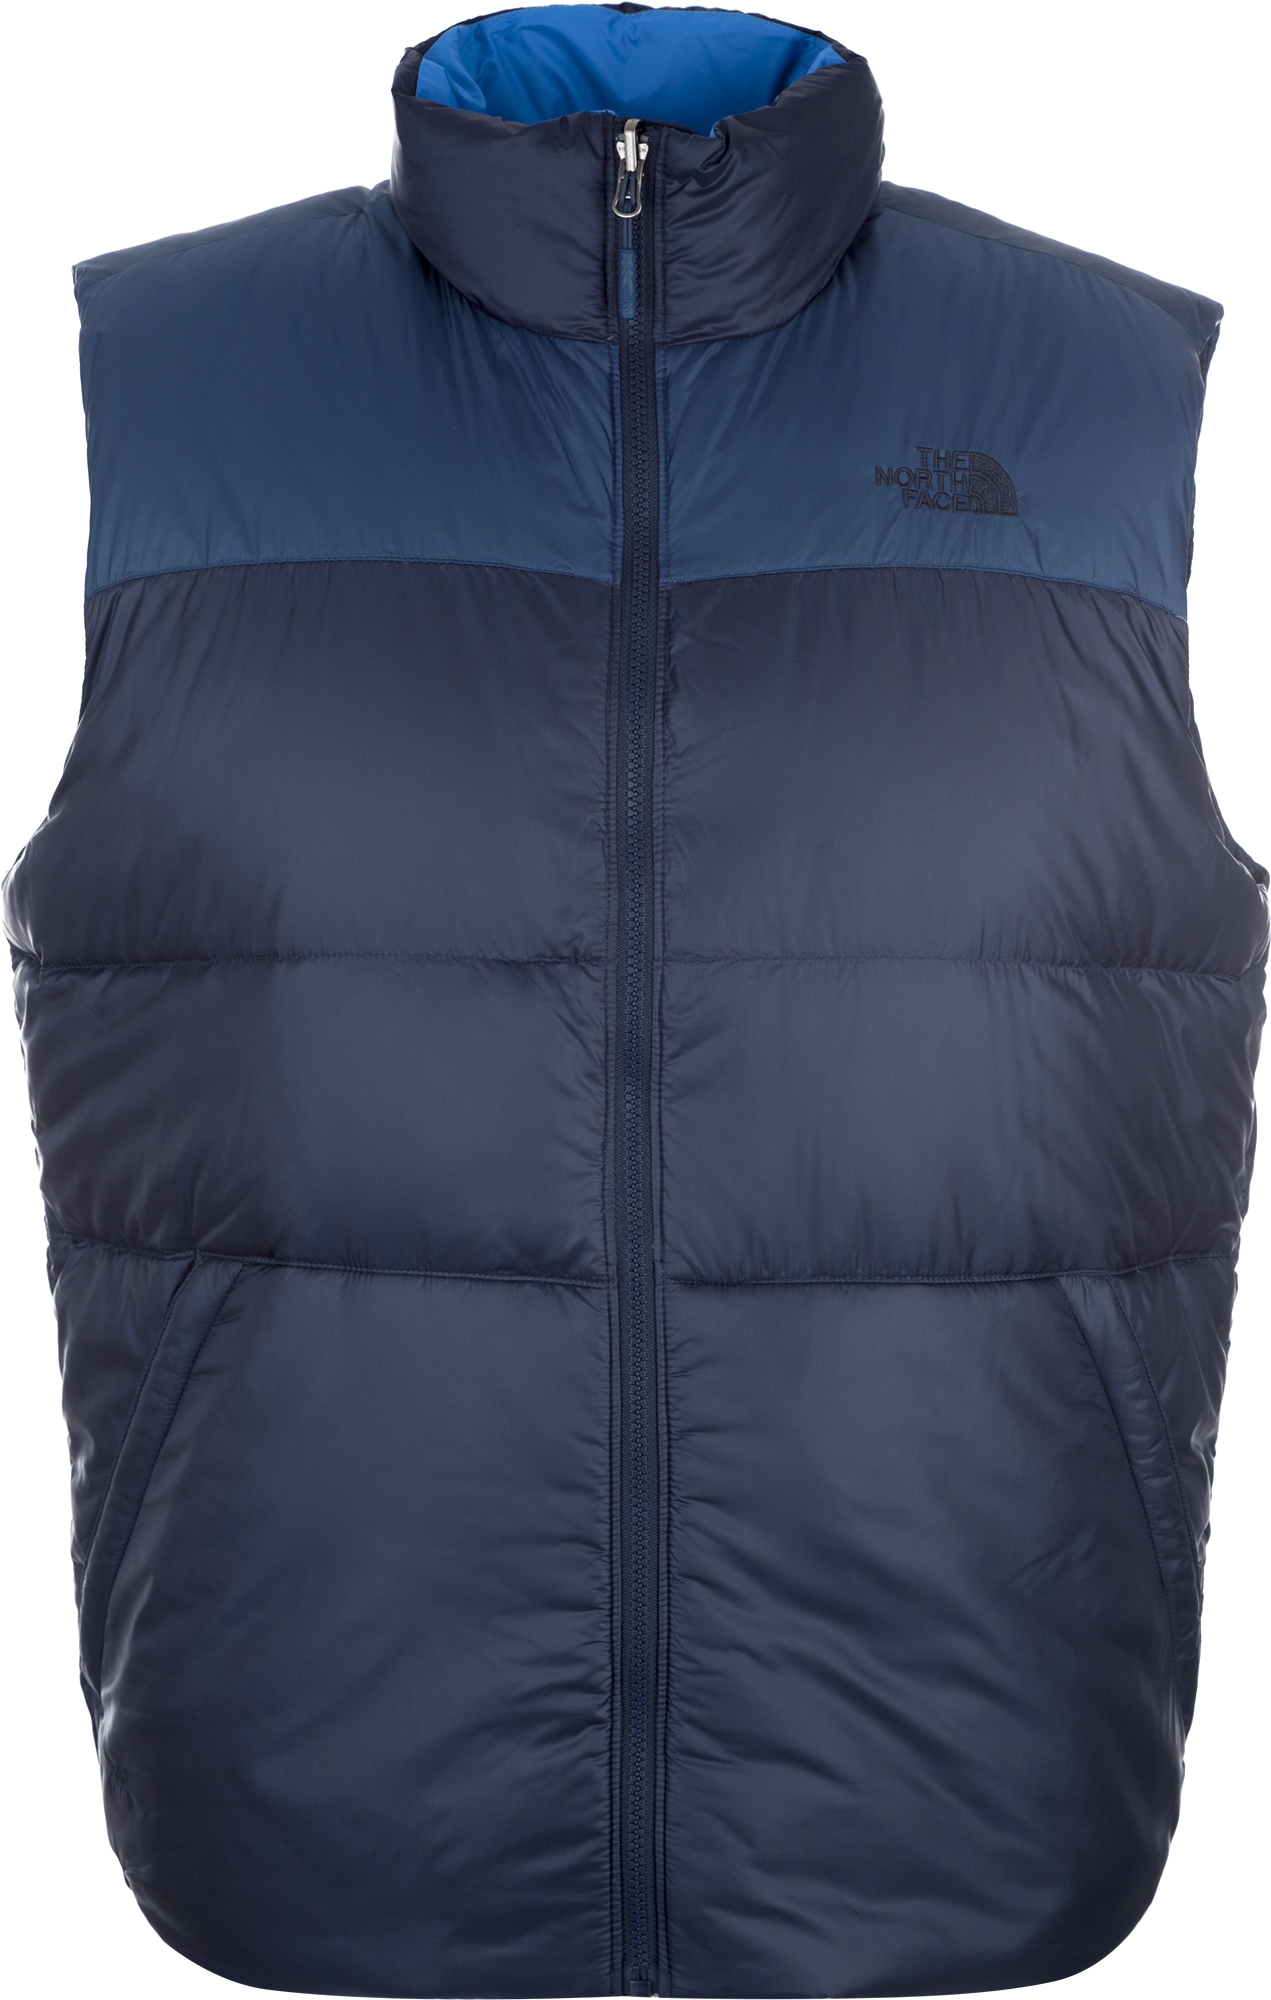 The North Face Жилет пуховой мужской The North Face Nuptse III Vest the north face олимпийка